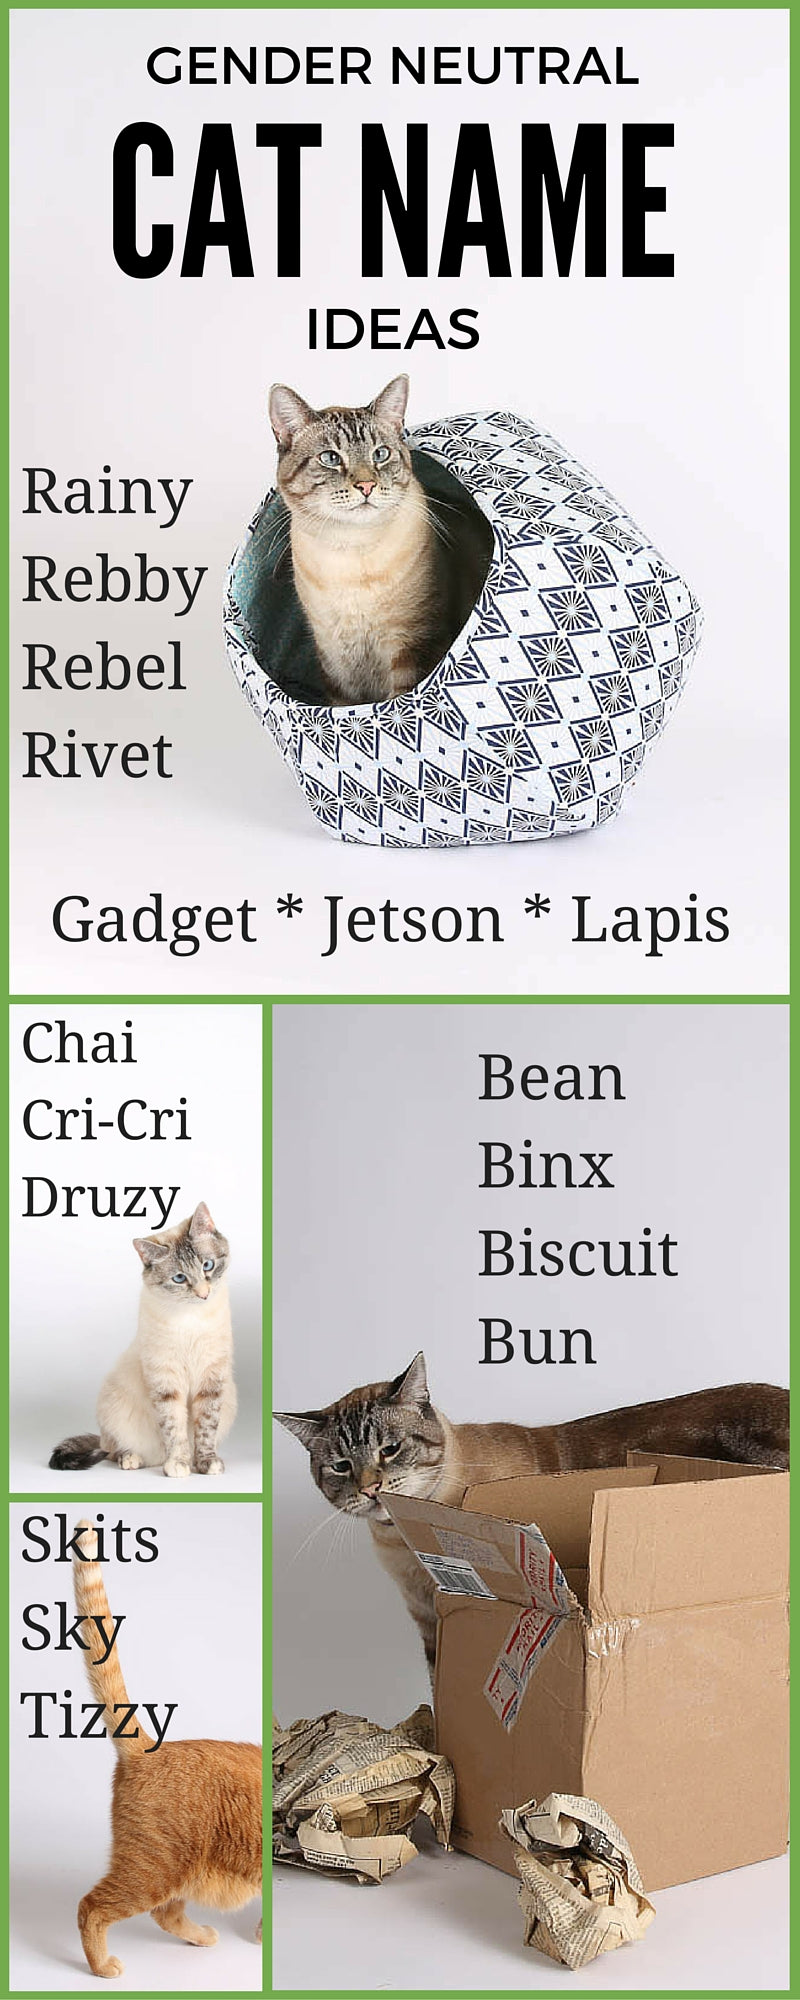 Ideas for gender neutral cat names